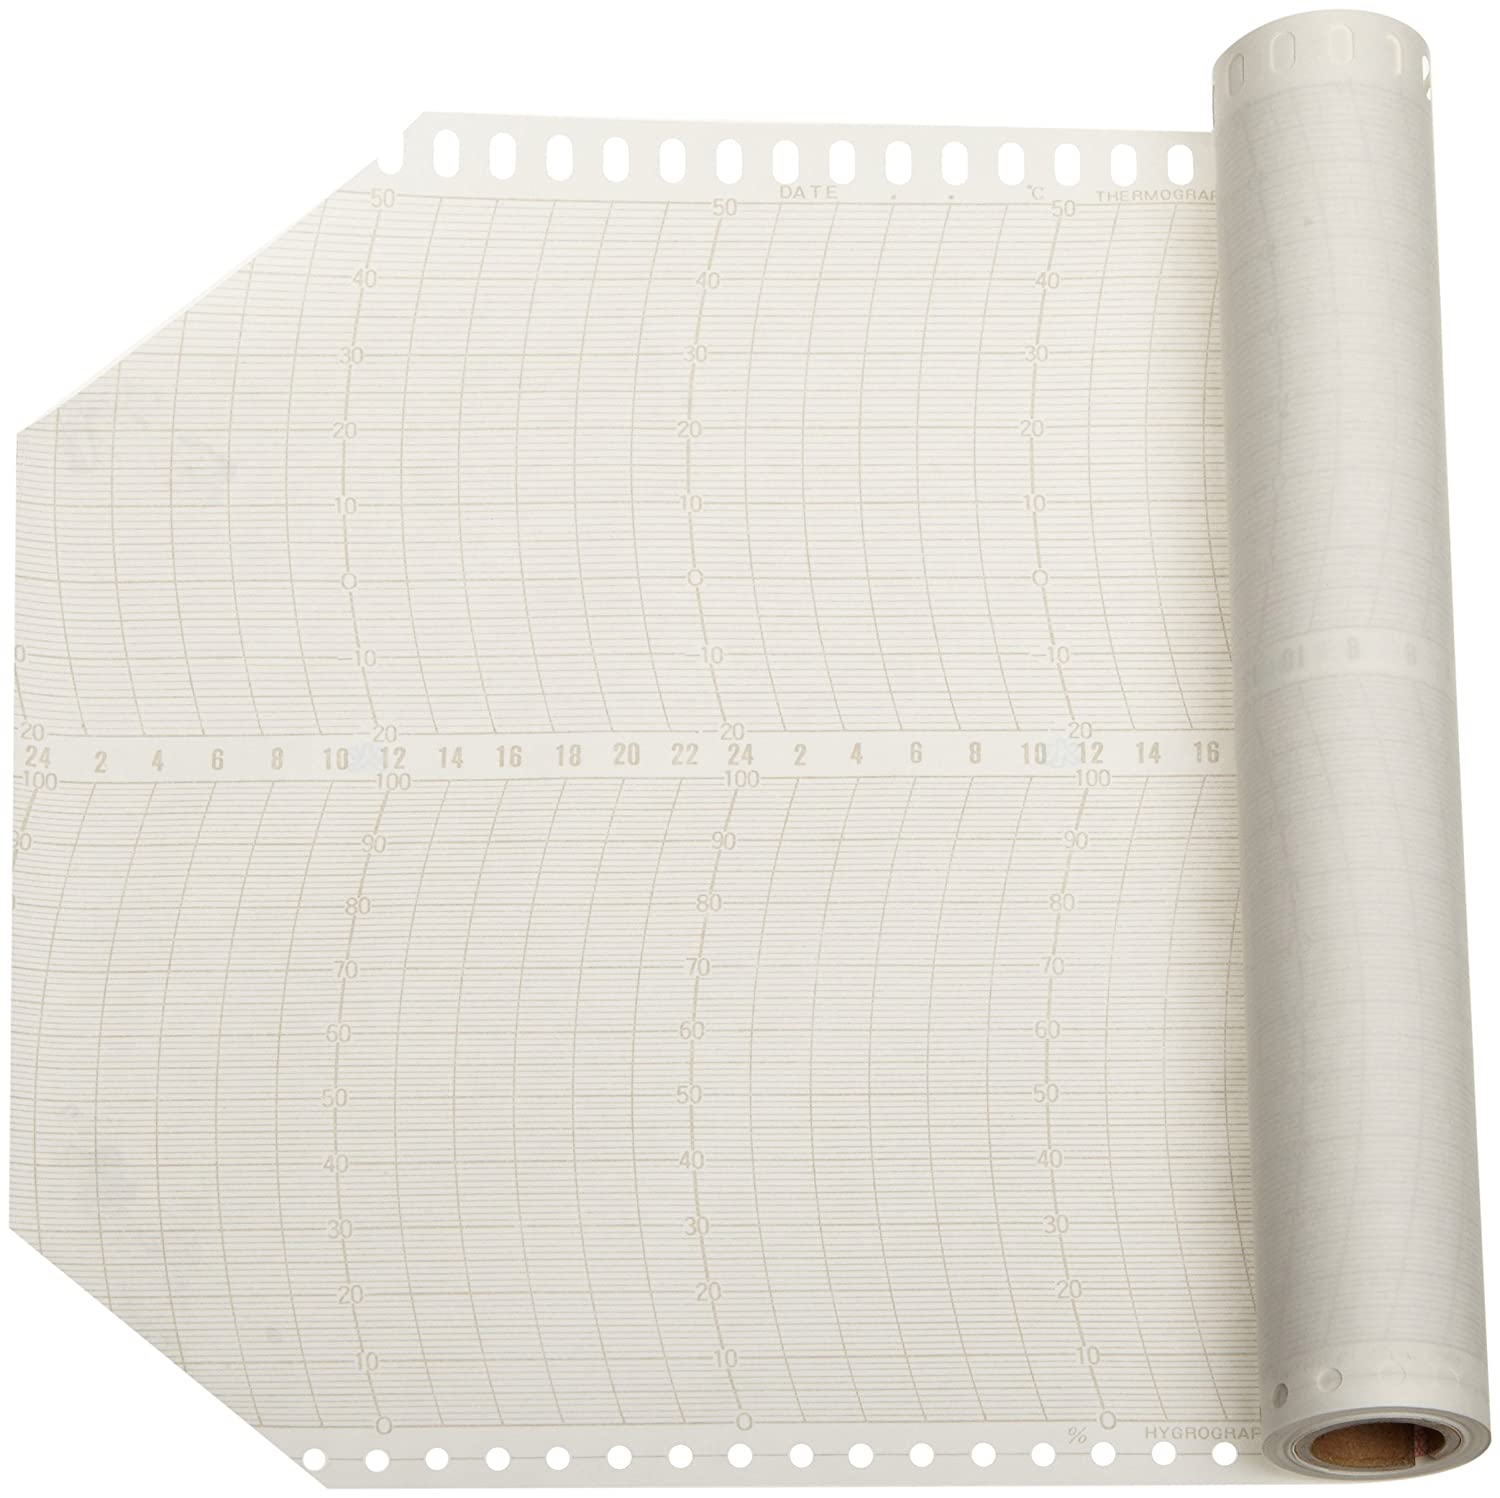 114 Length x 6.6 Height Oakton WD-37250-60 Long Cycle C Chart Paper Hygrothermograph 1 month